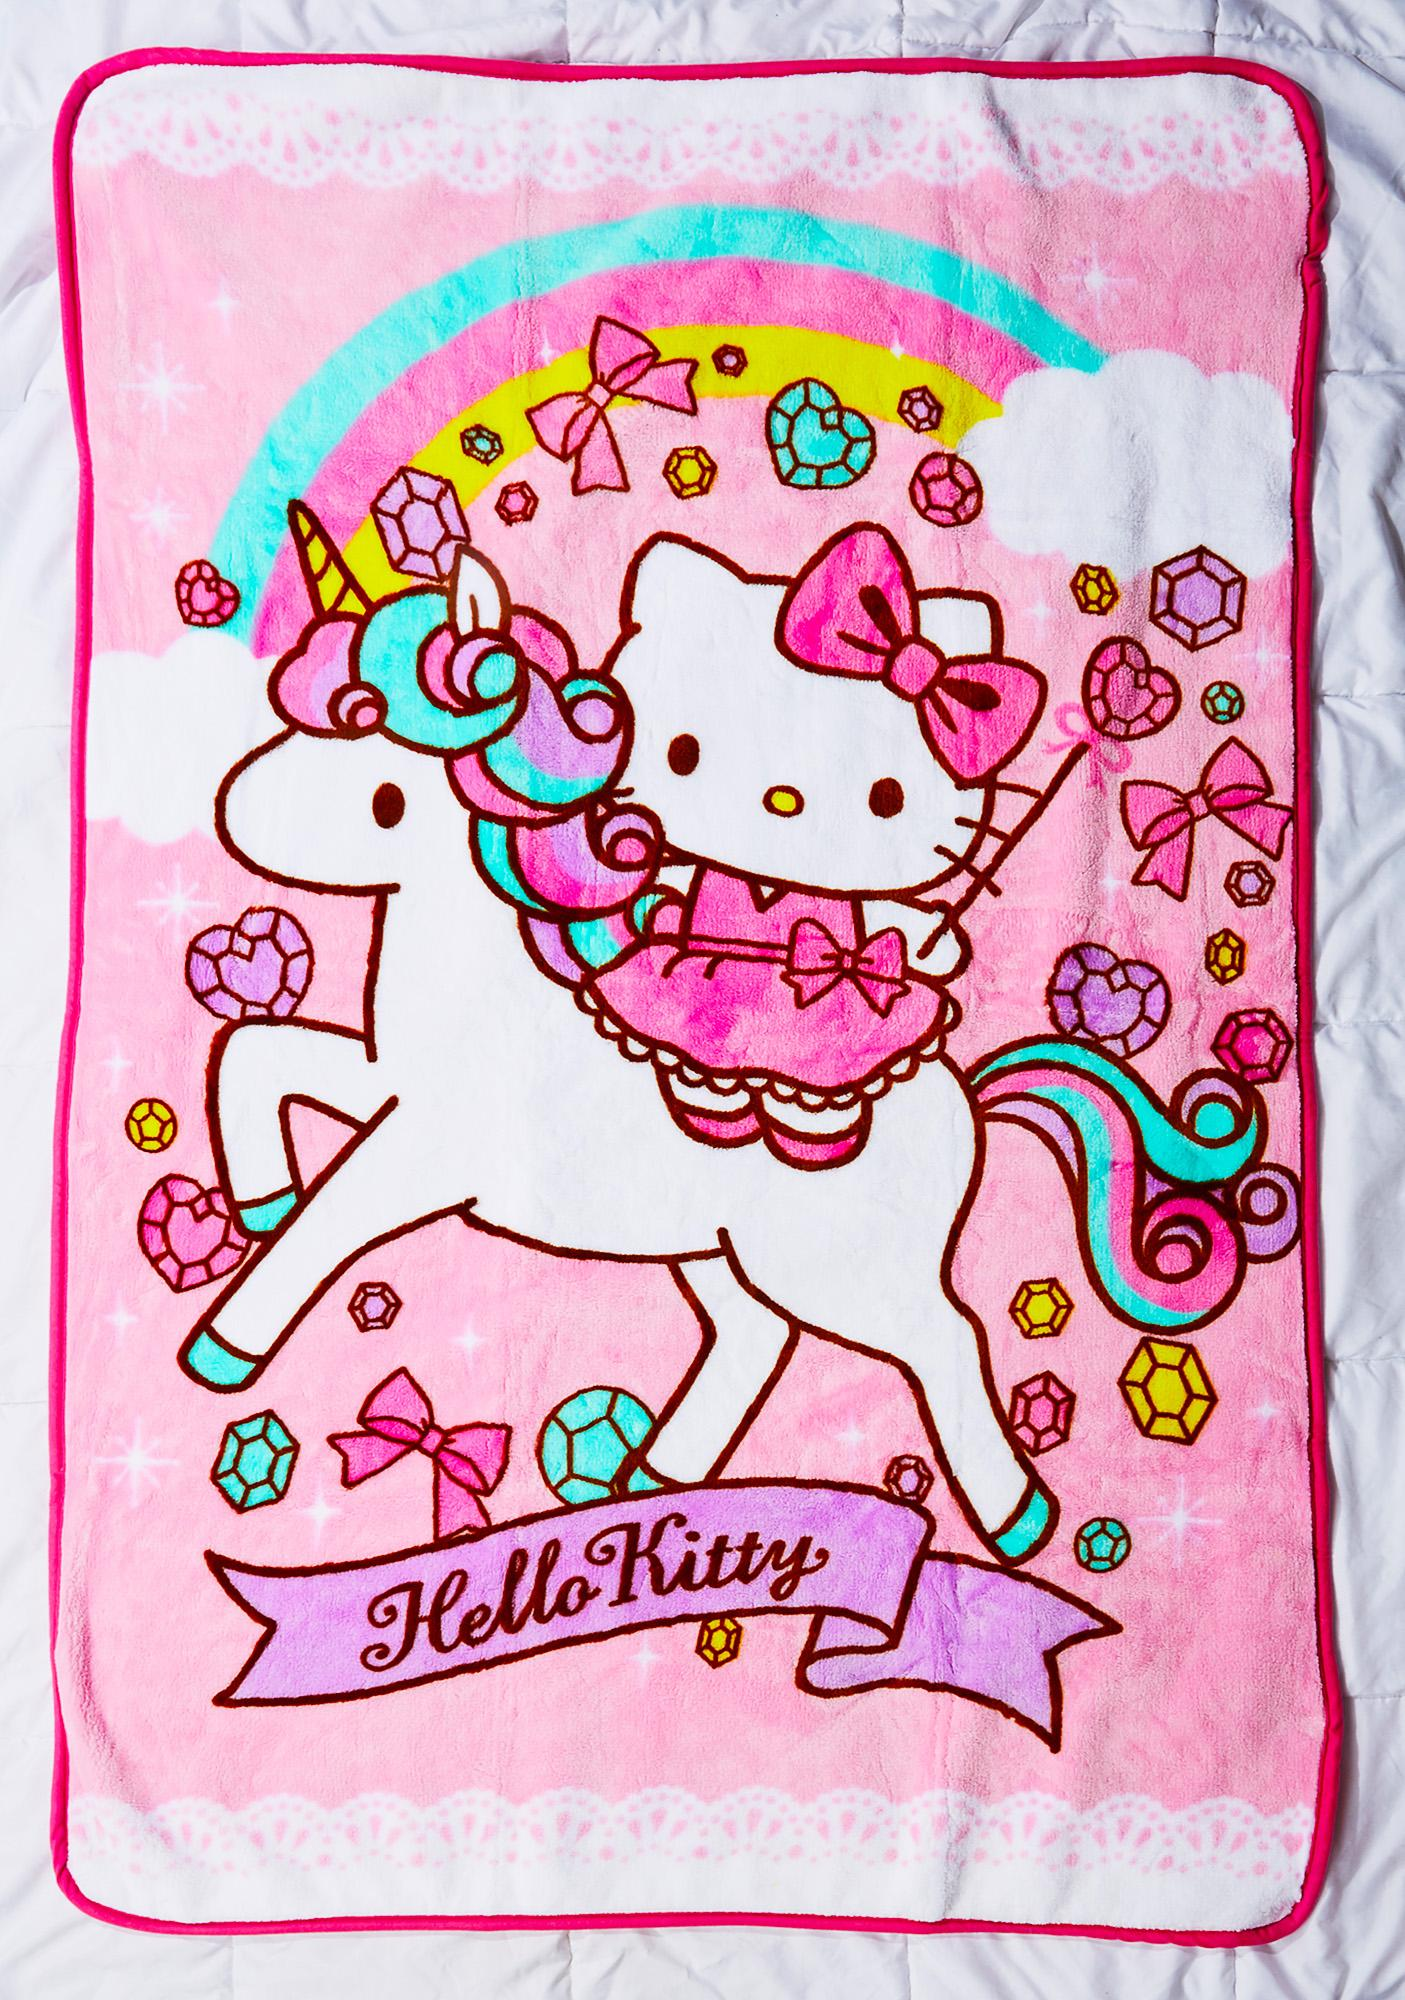 Sanrio Unicorn Kitty Blanket | Dolls Kill